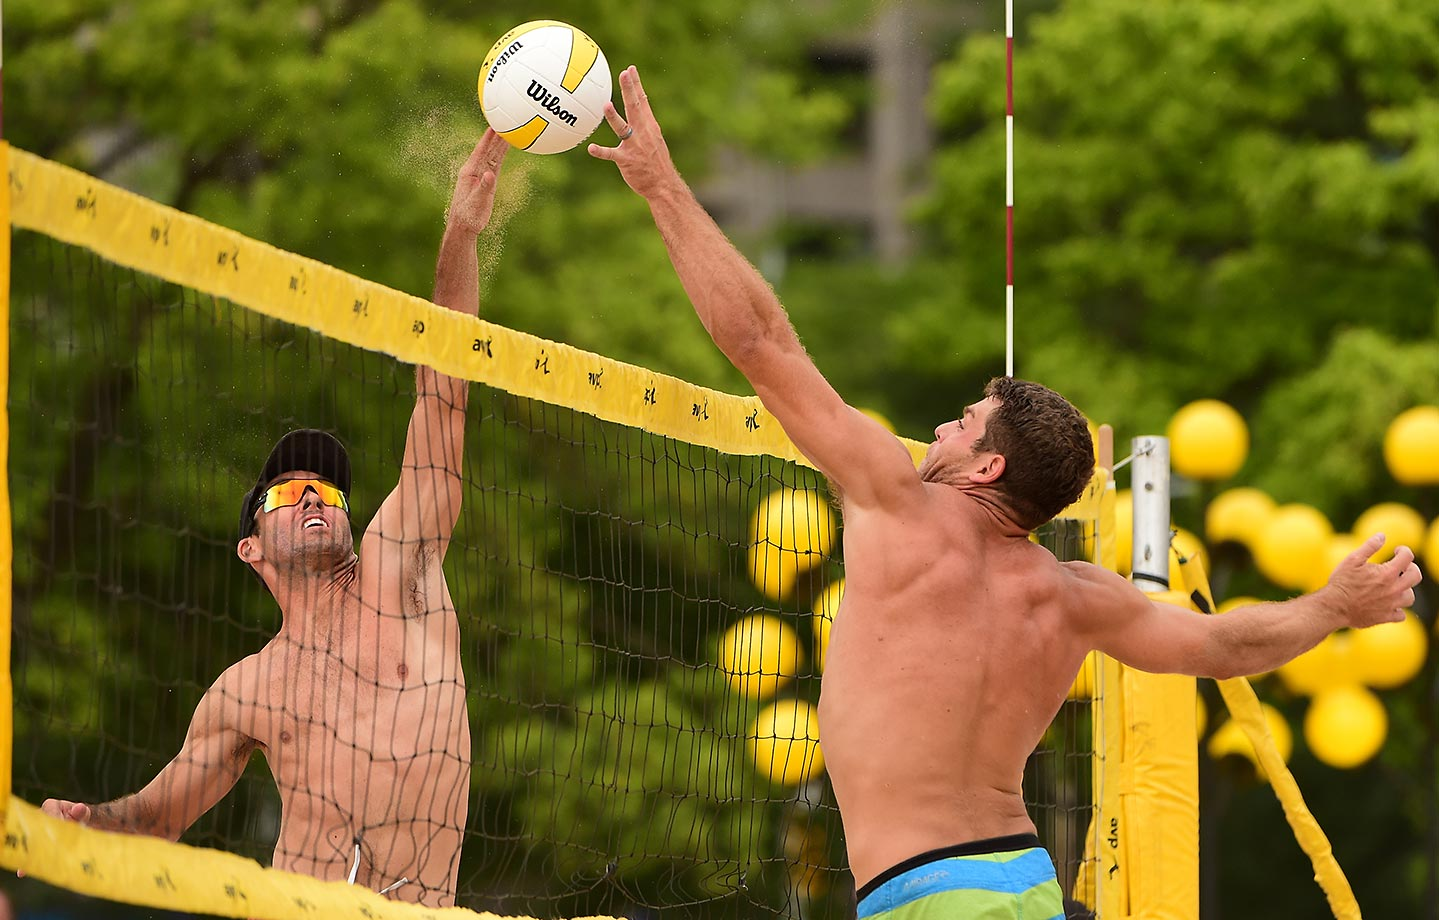 Hudson Bates (right) jousts at the net. Hudson and partner Dave McKienzie finished in a tie for fifth.